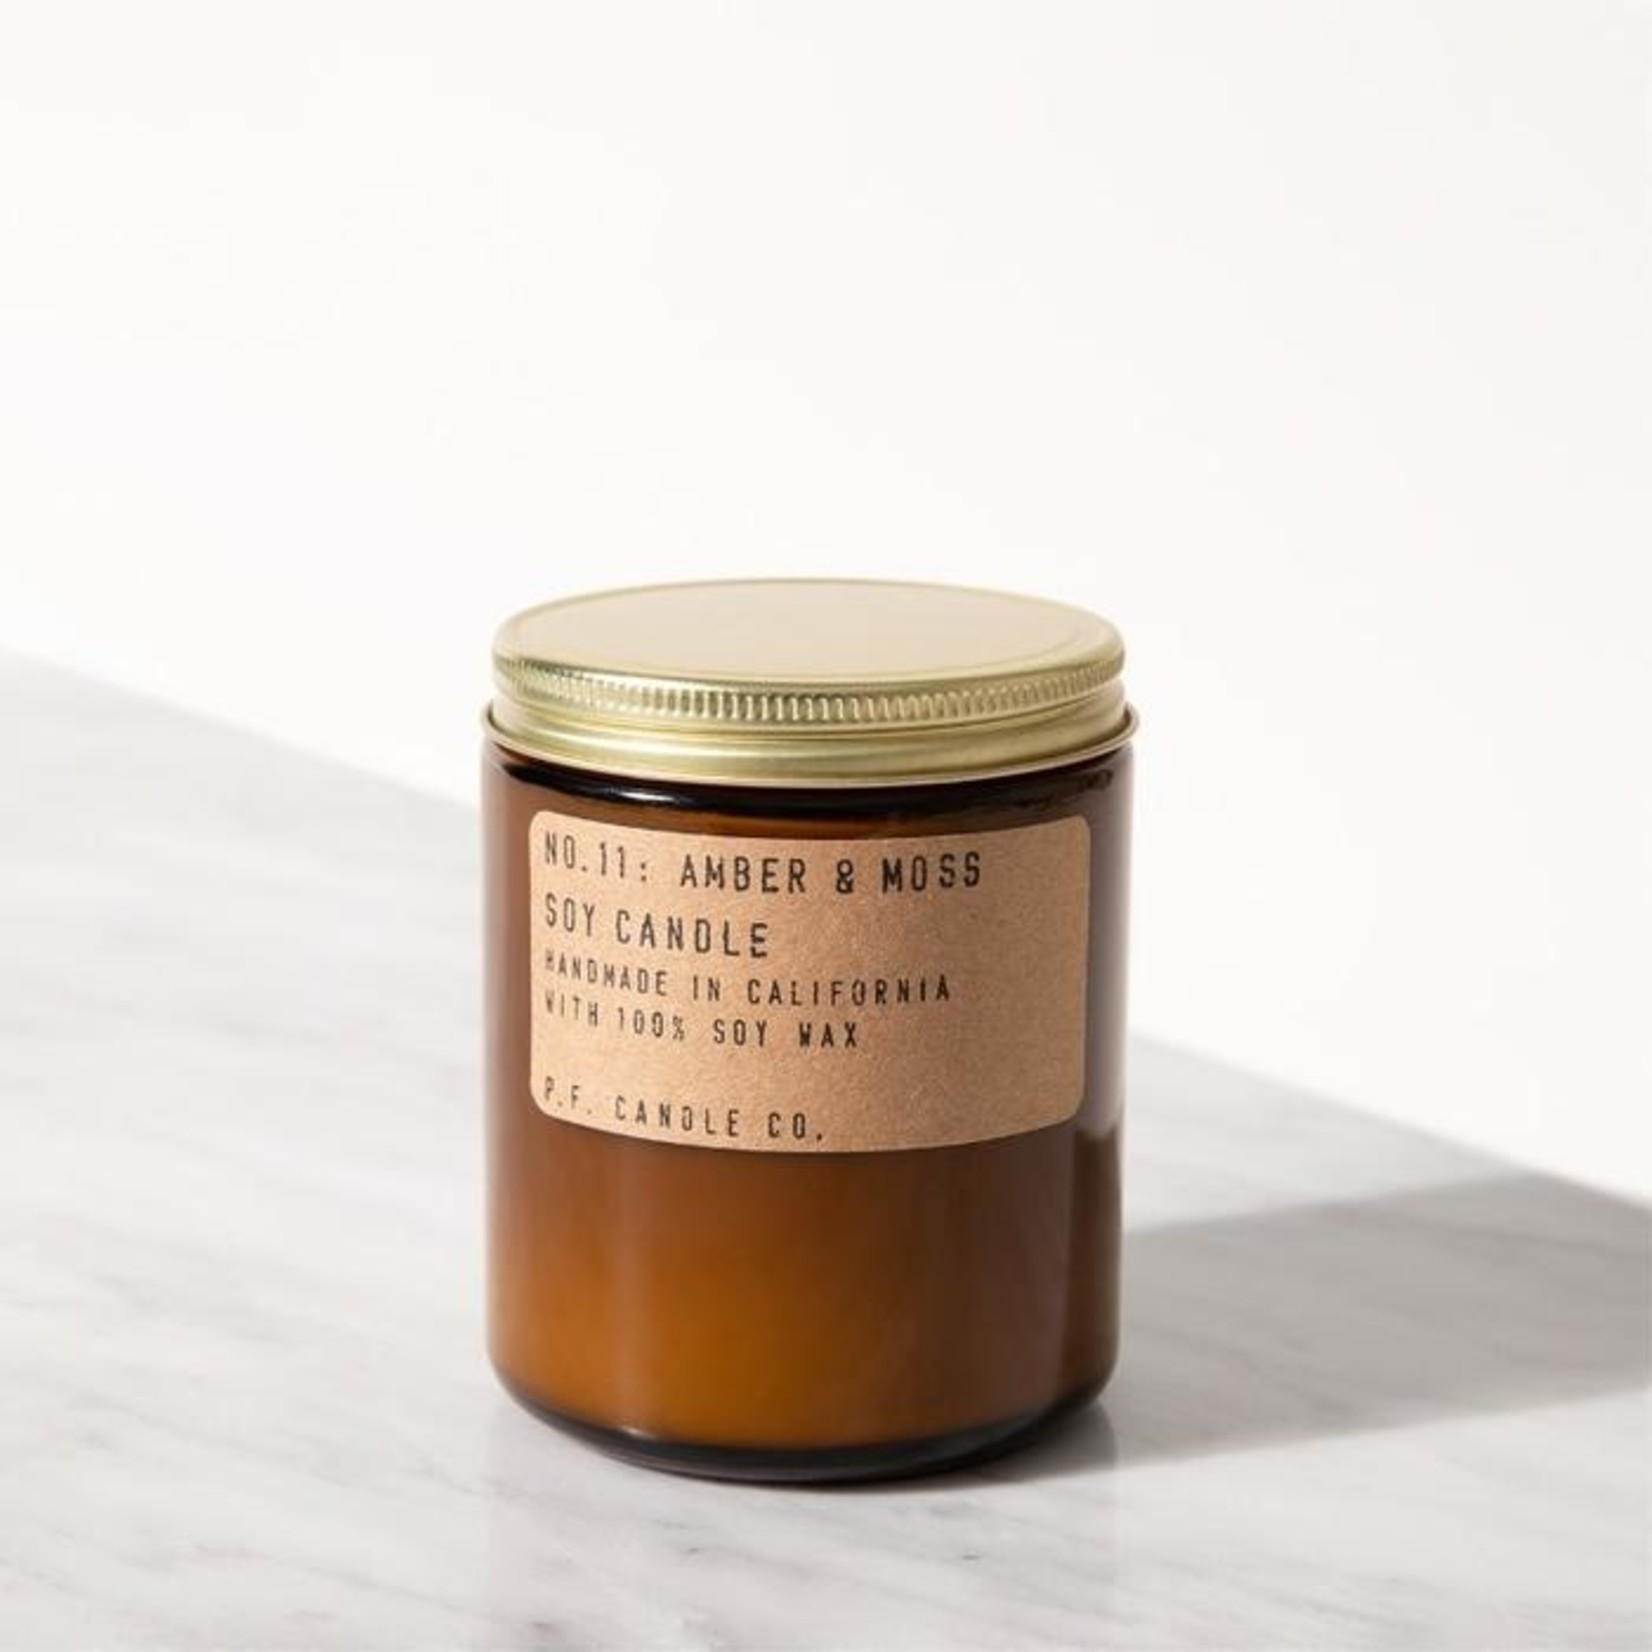 PF Candle Co Amber & Moss Candle (7.2 oz)